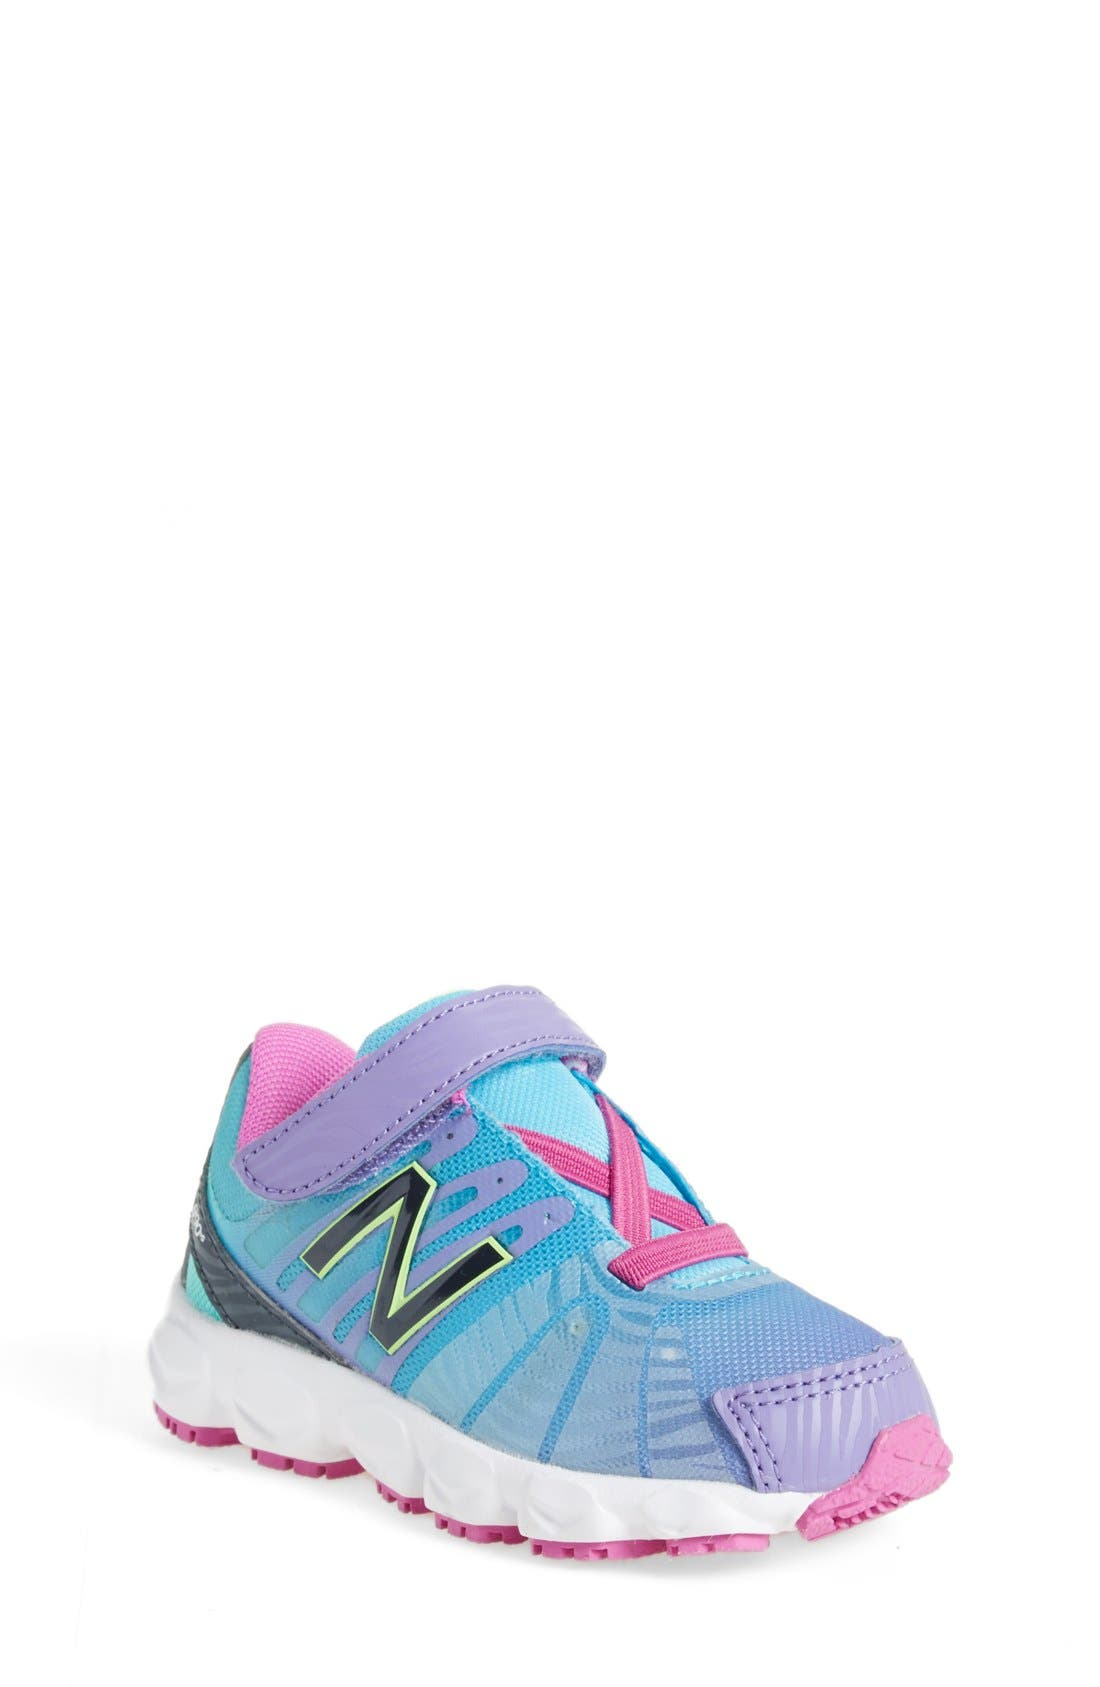 NEW BALANCE '890 V5' Athletic Shoe